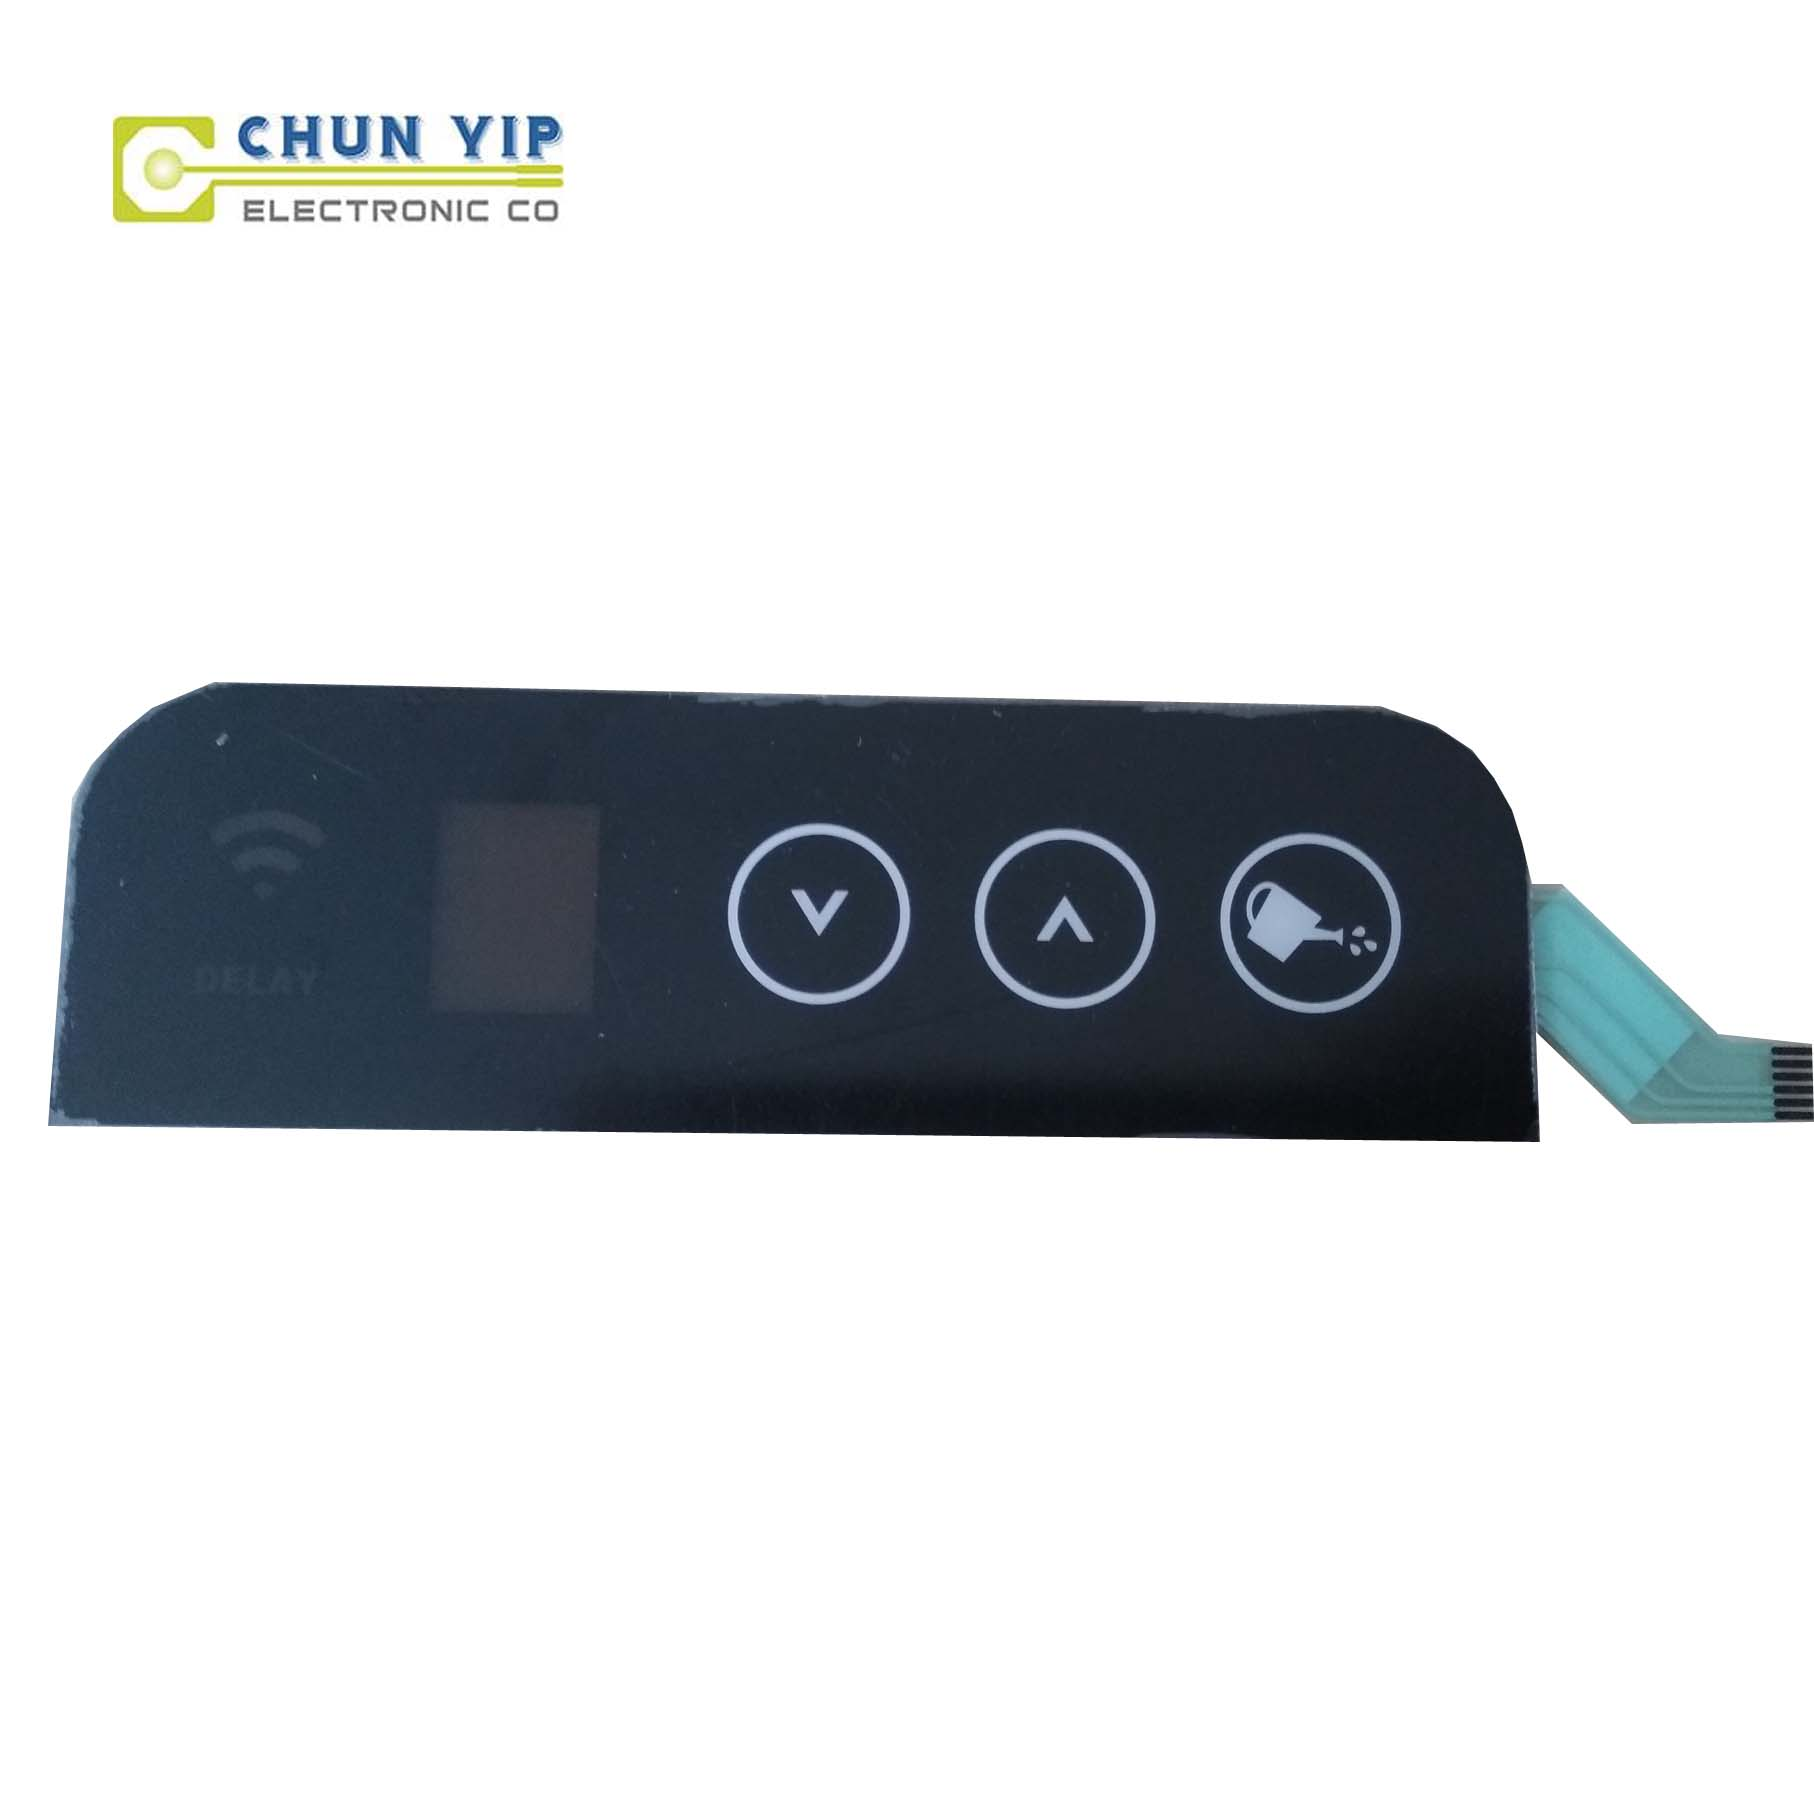 Corrugated Pre-Painted Steel Plate Membrane Switches Control -